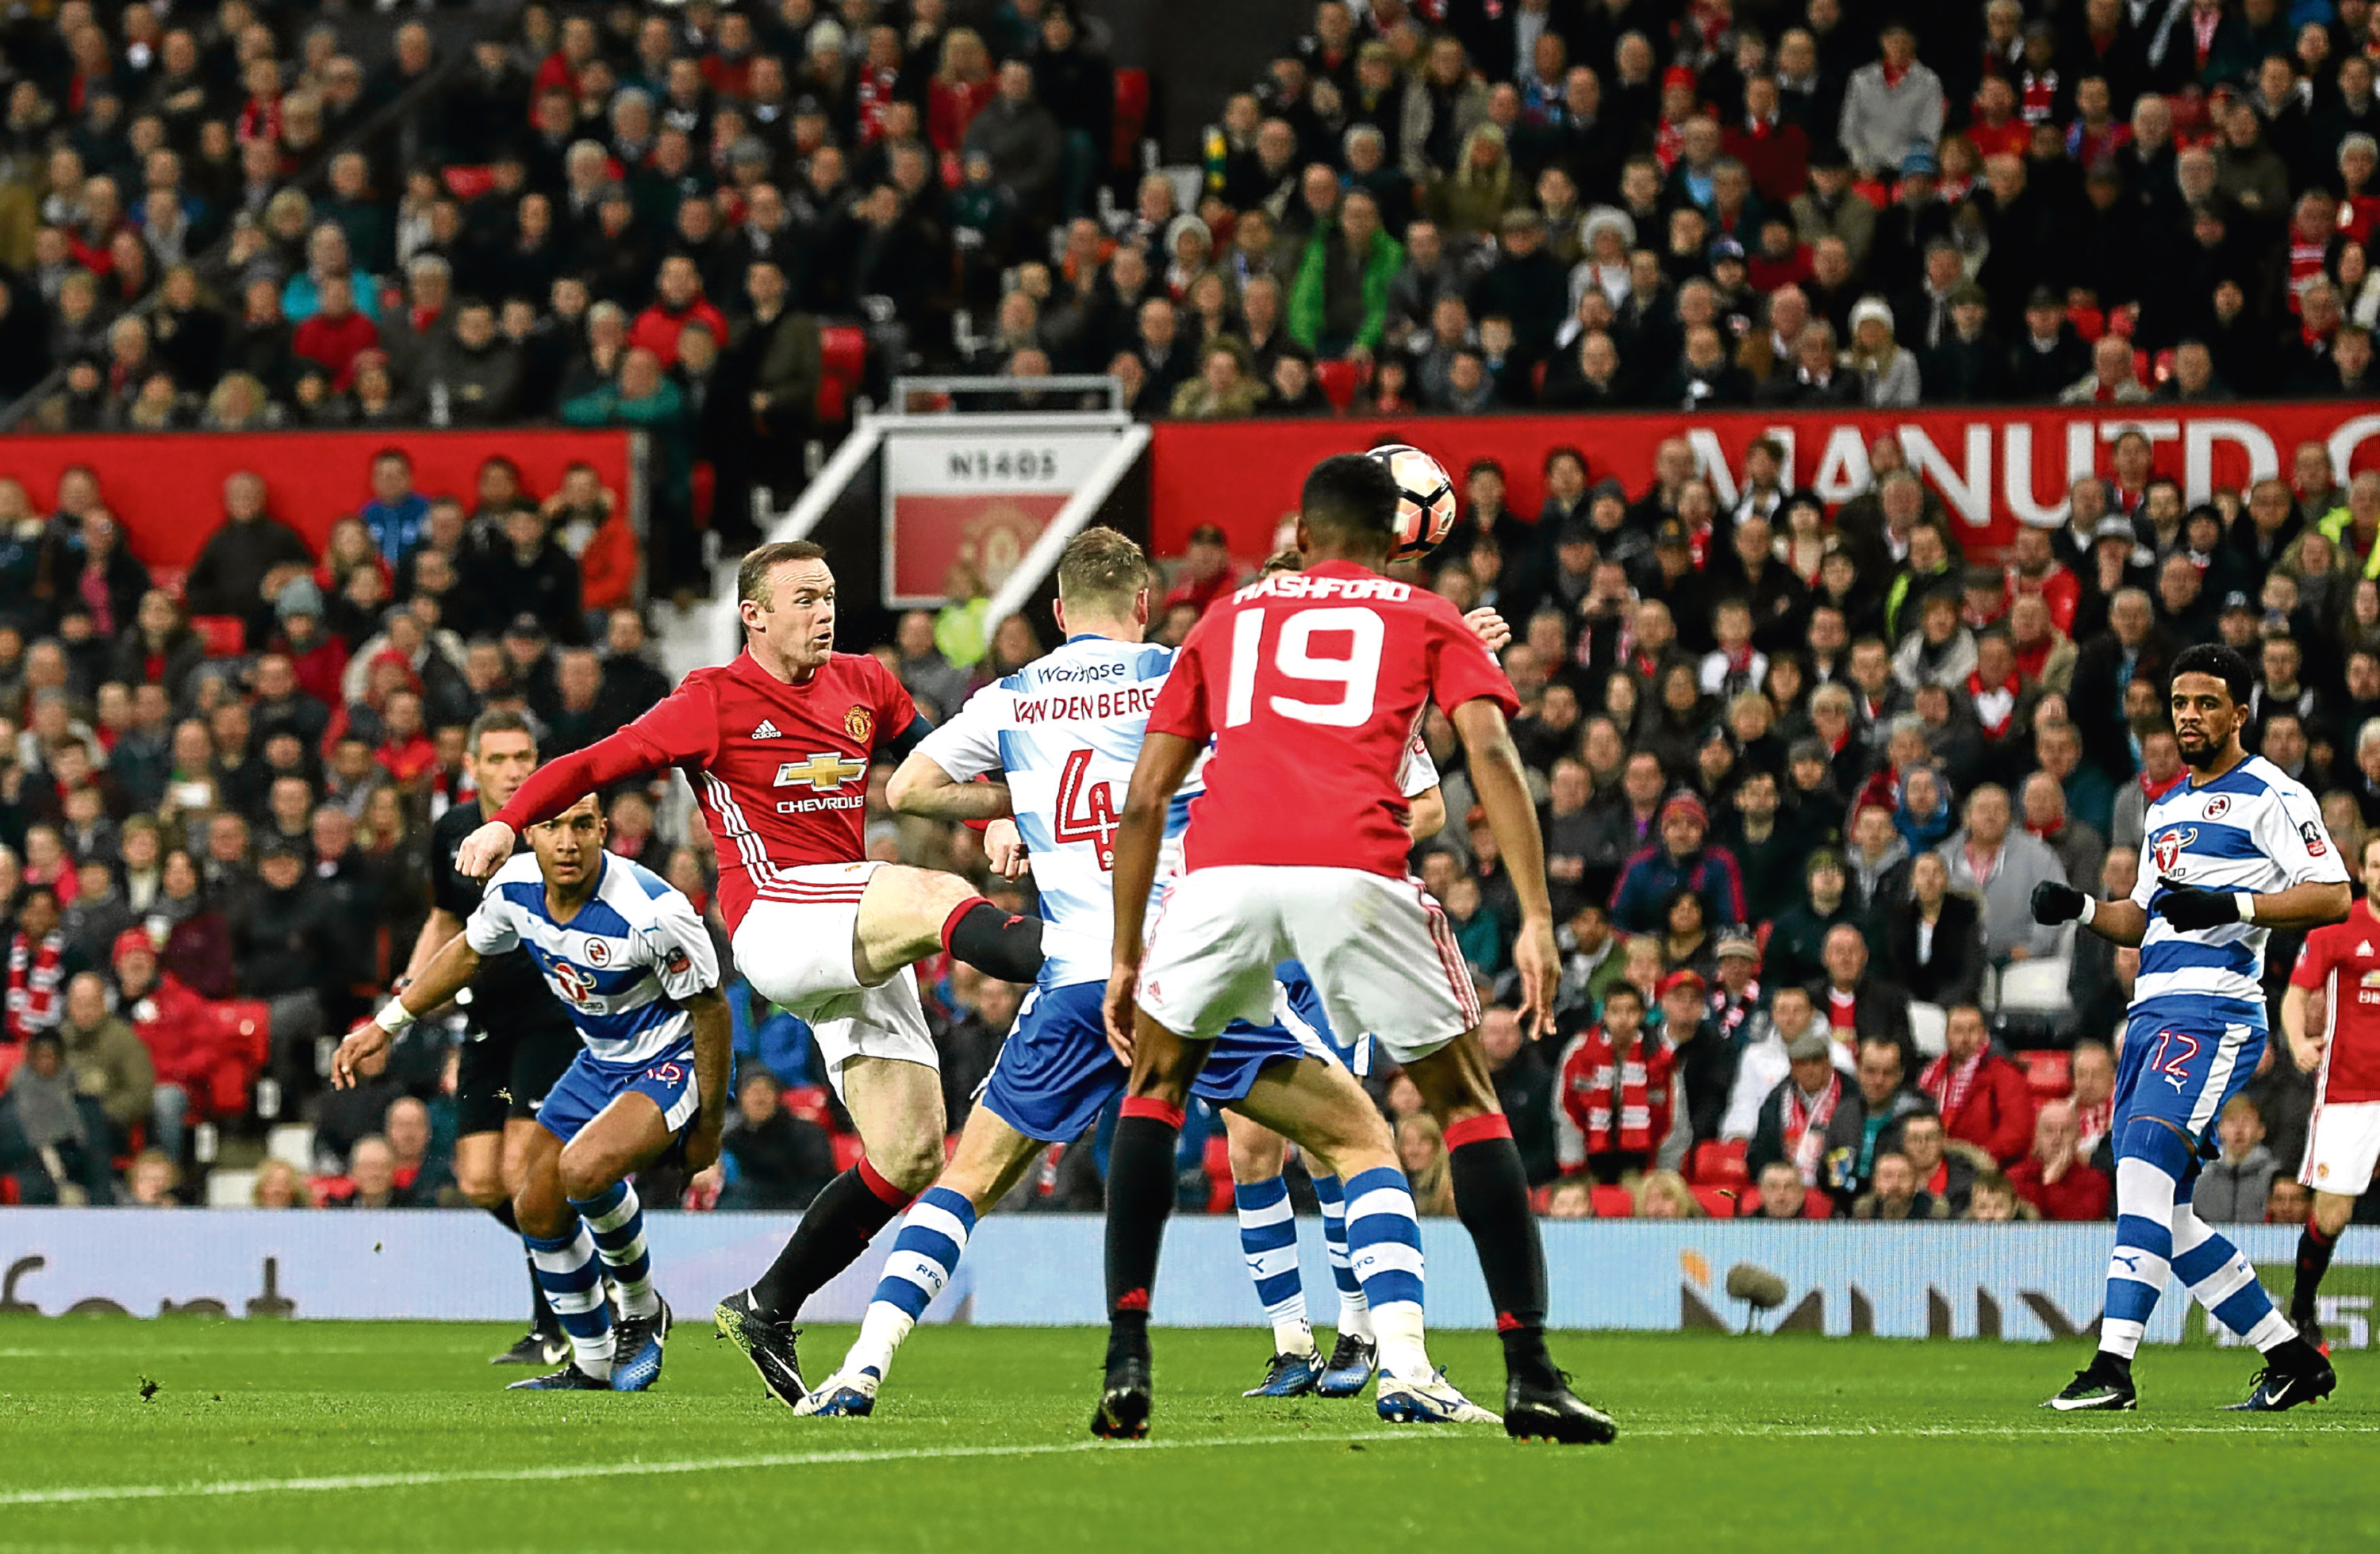 Manchester United's Wayne Rooney scores his side's first goal (Martin Rickett/PA Wire)